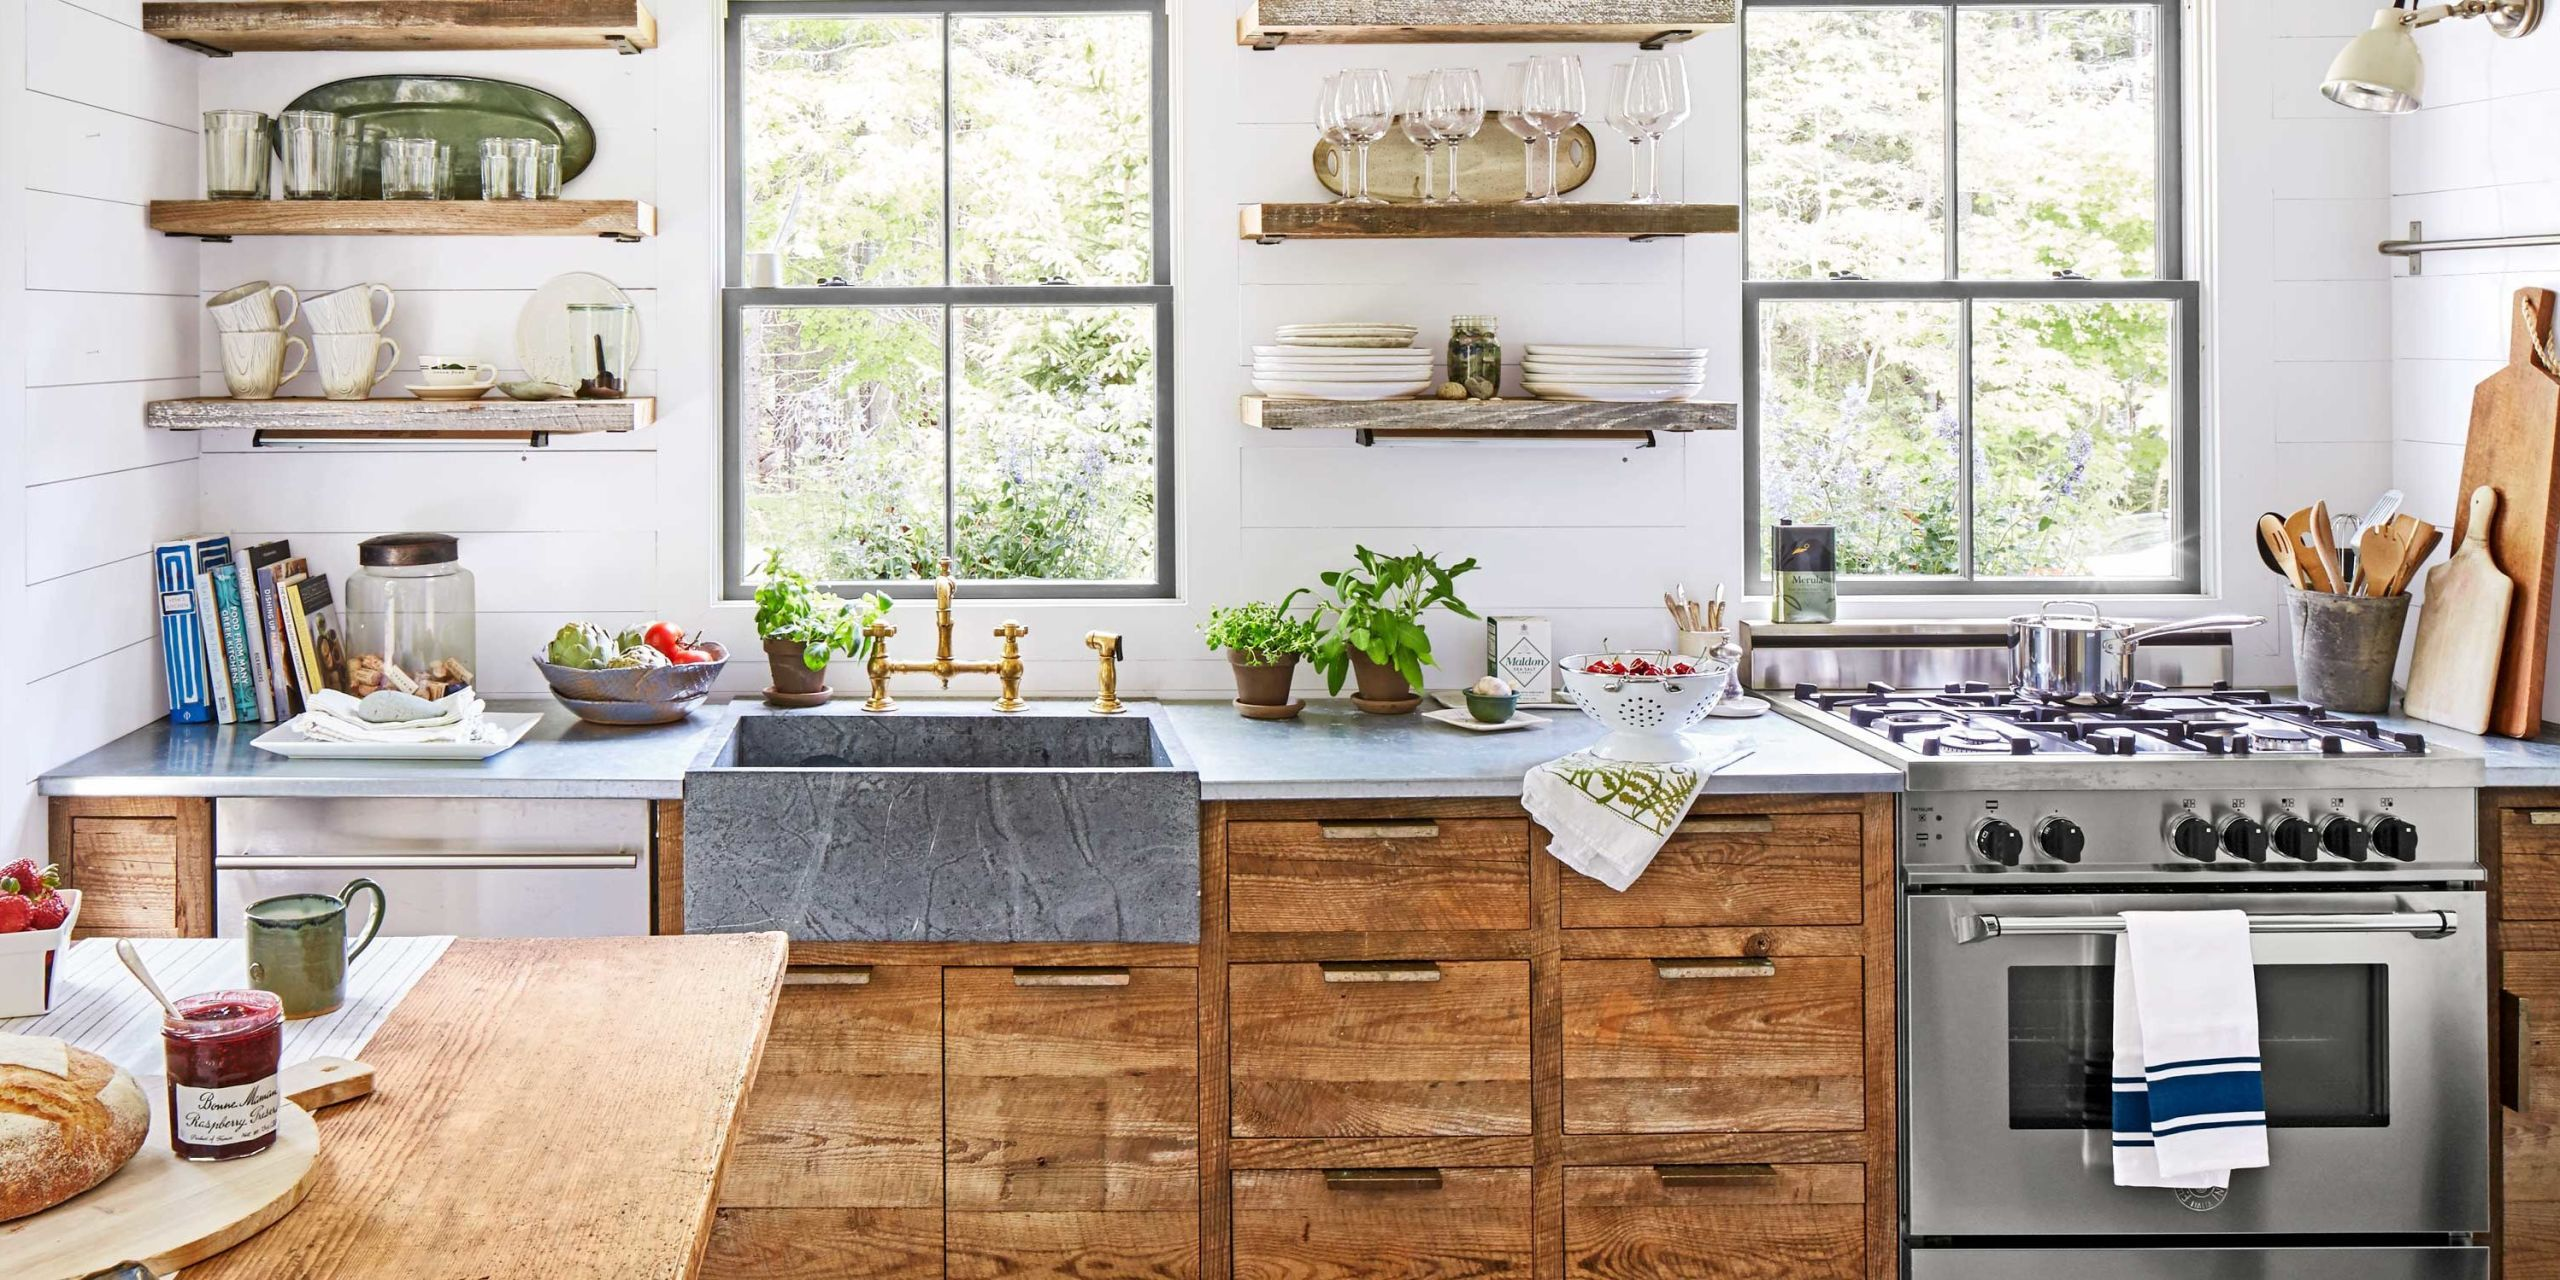 Captivating From Bold Design Choices To Affordable Appliances, Our Kitchen Decorating  Ideas And Inspiration Pictures Will Help Make This Everyoneu0027s Favorite Room  In The ...